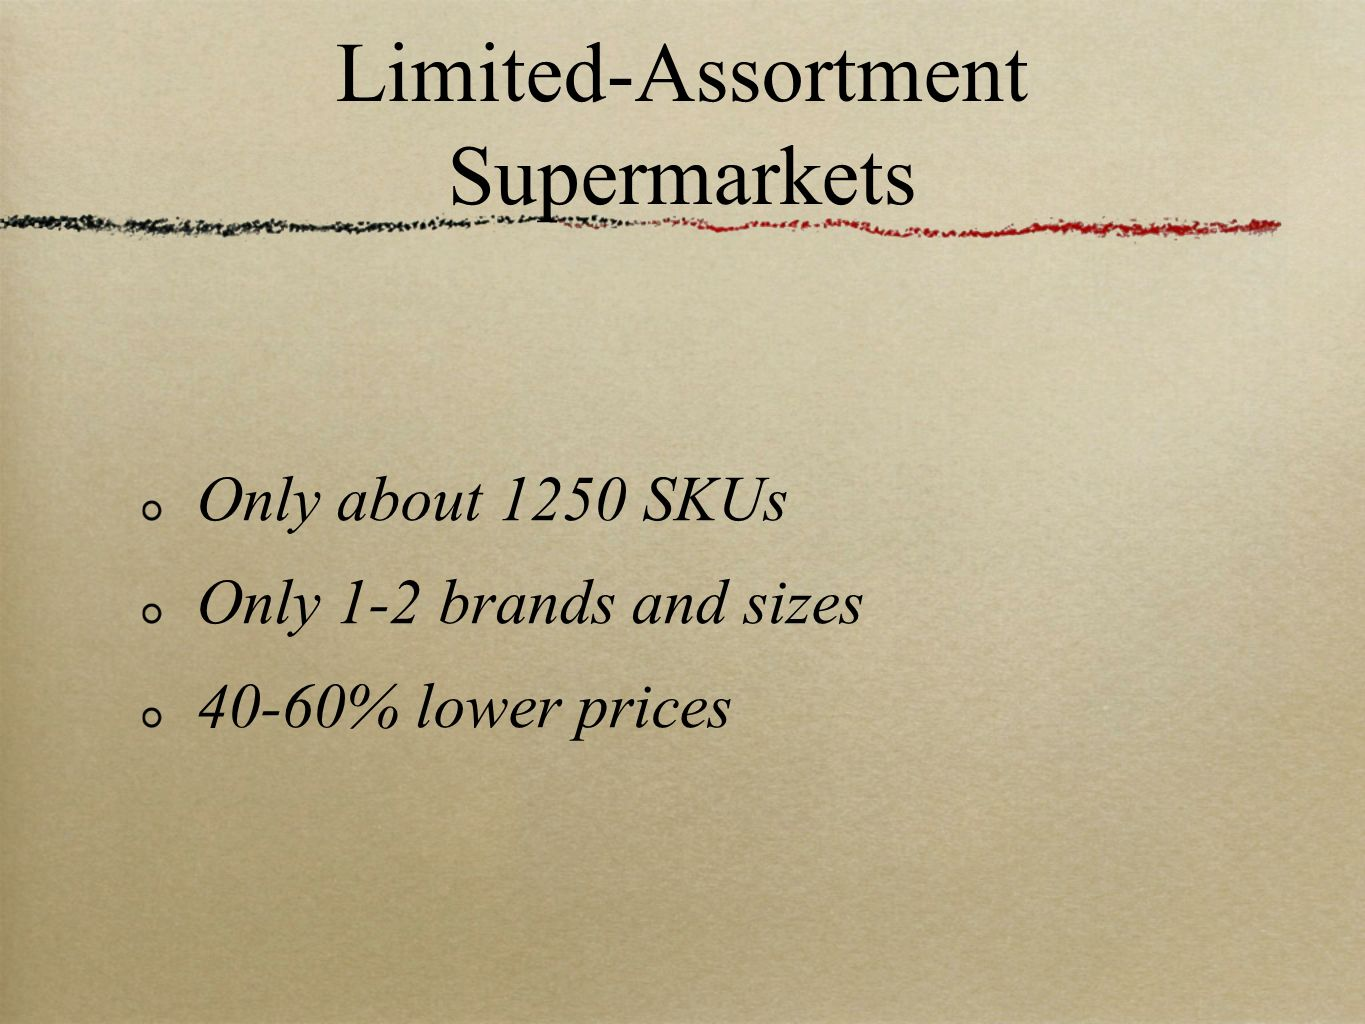 Limited-Assortment Supermarkets